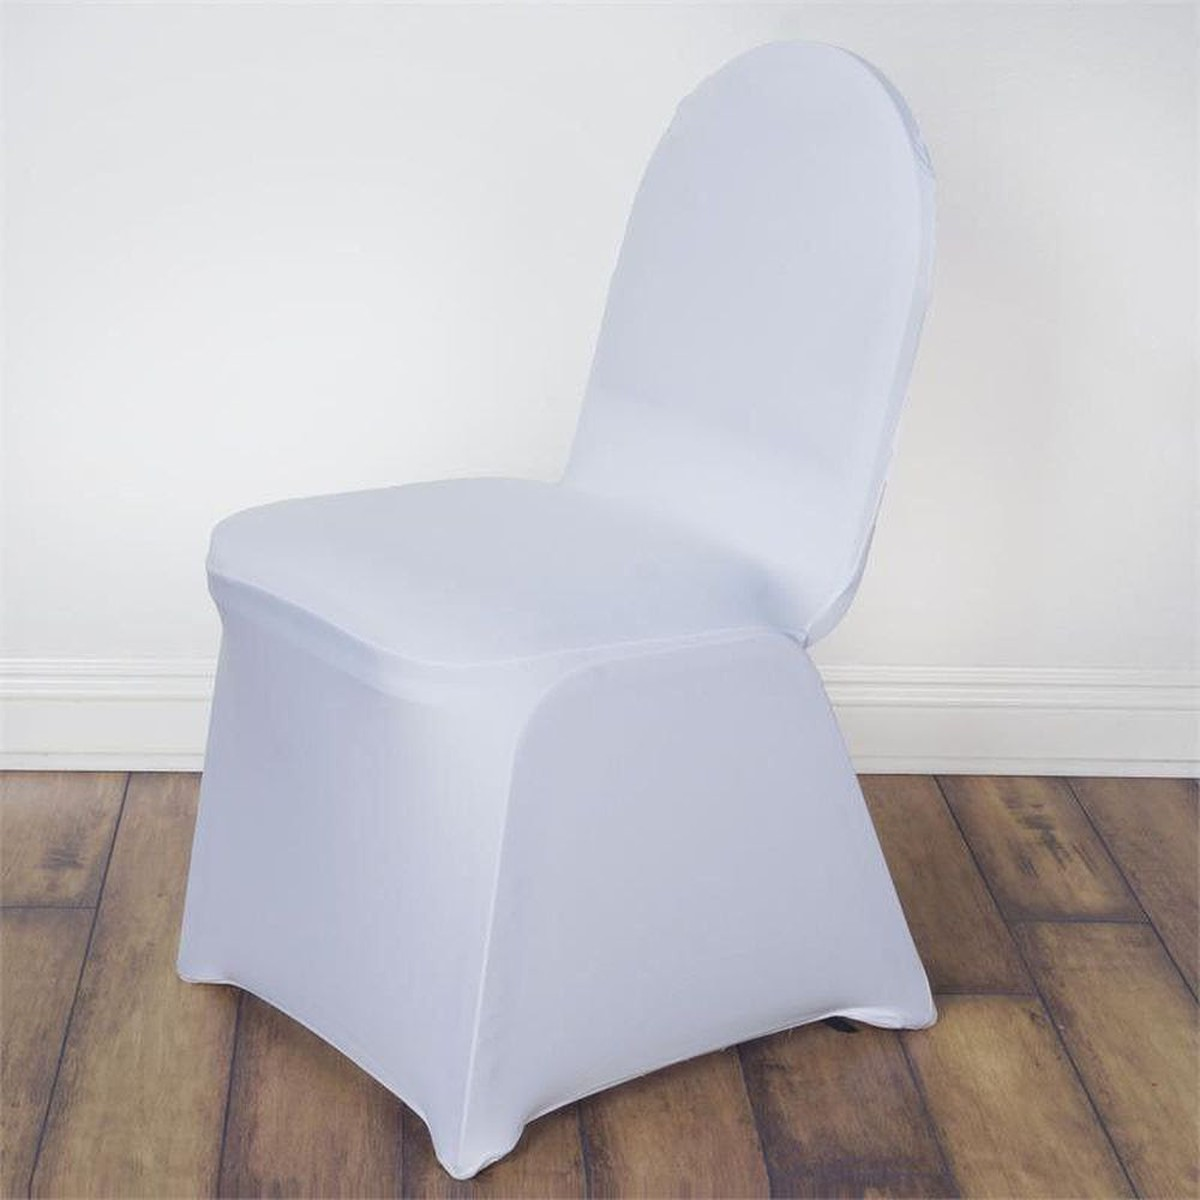 ex hire chair covers for sale bistro chairs secondhand hotel furniture banquet 600x cafe